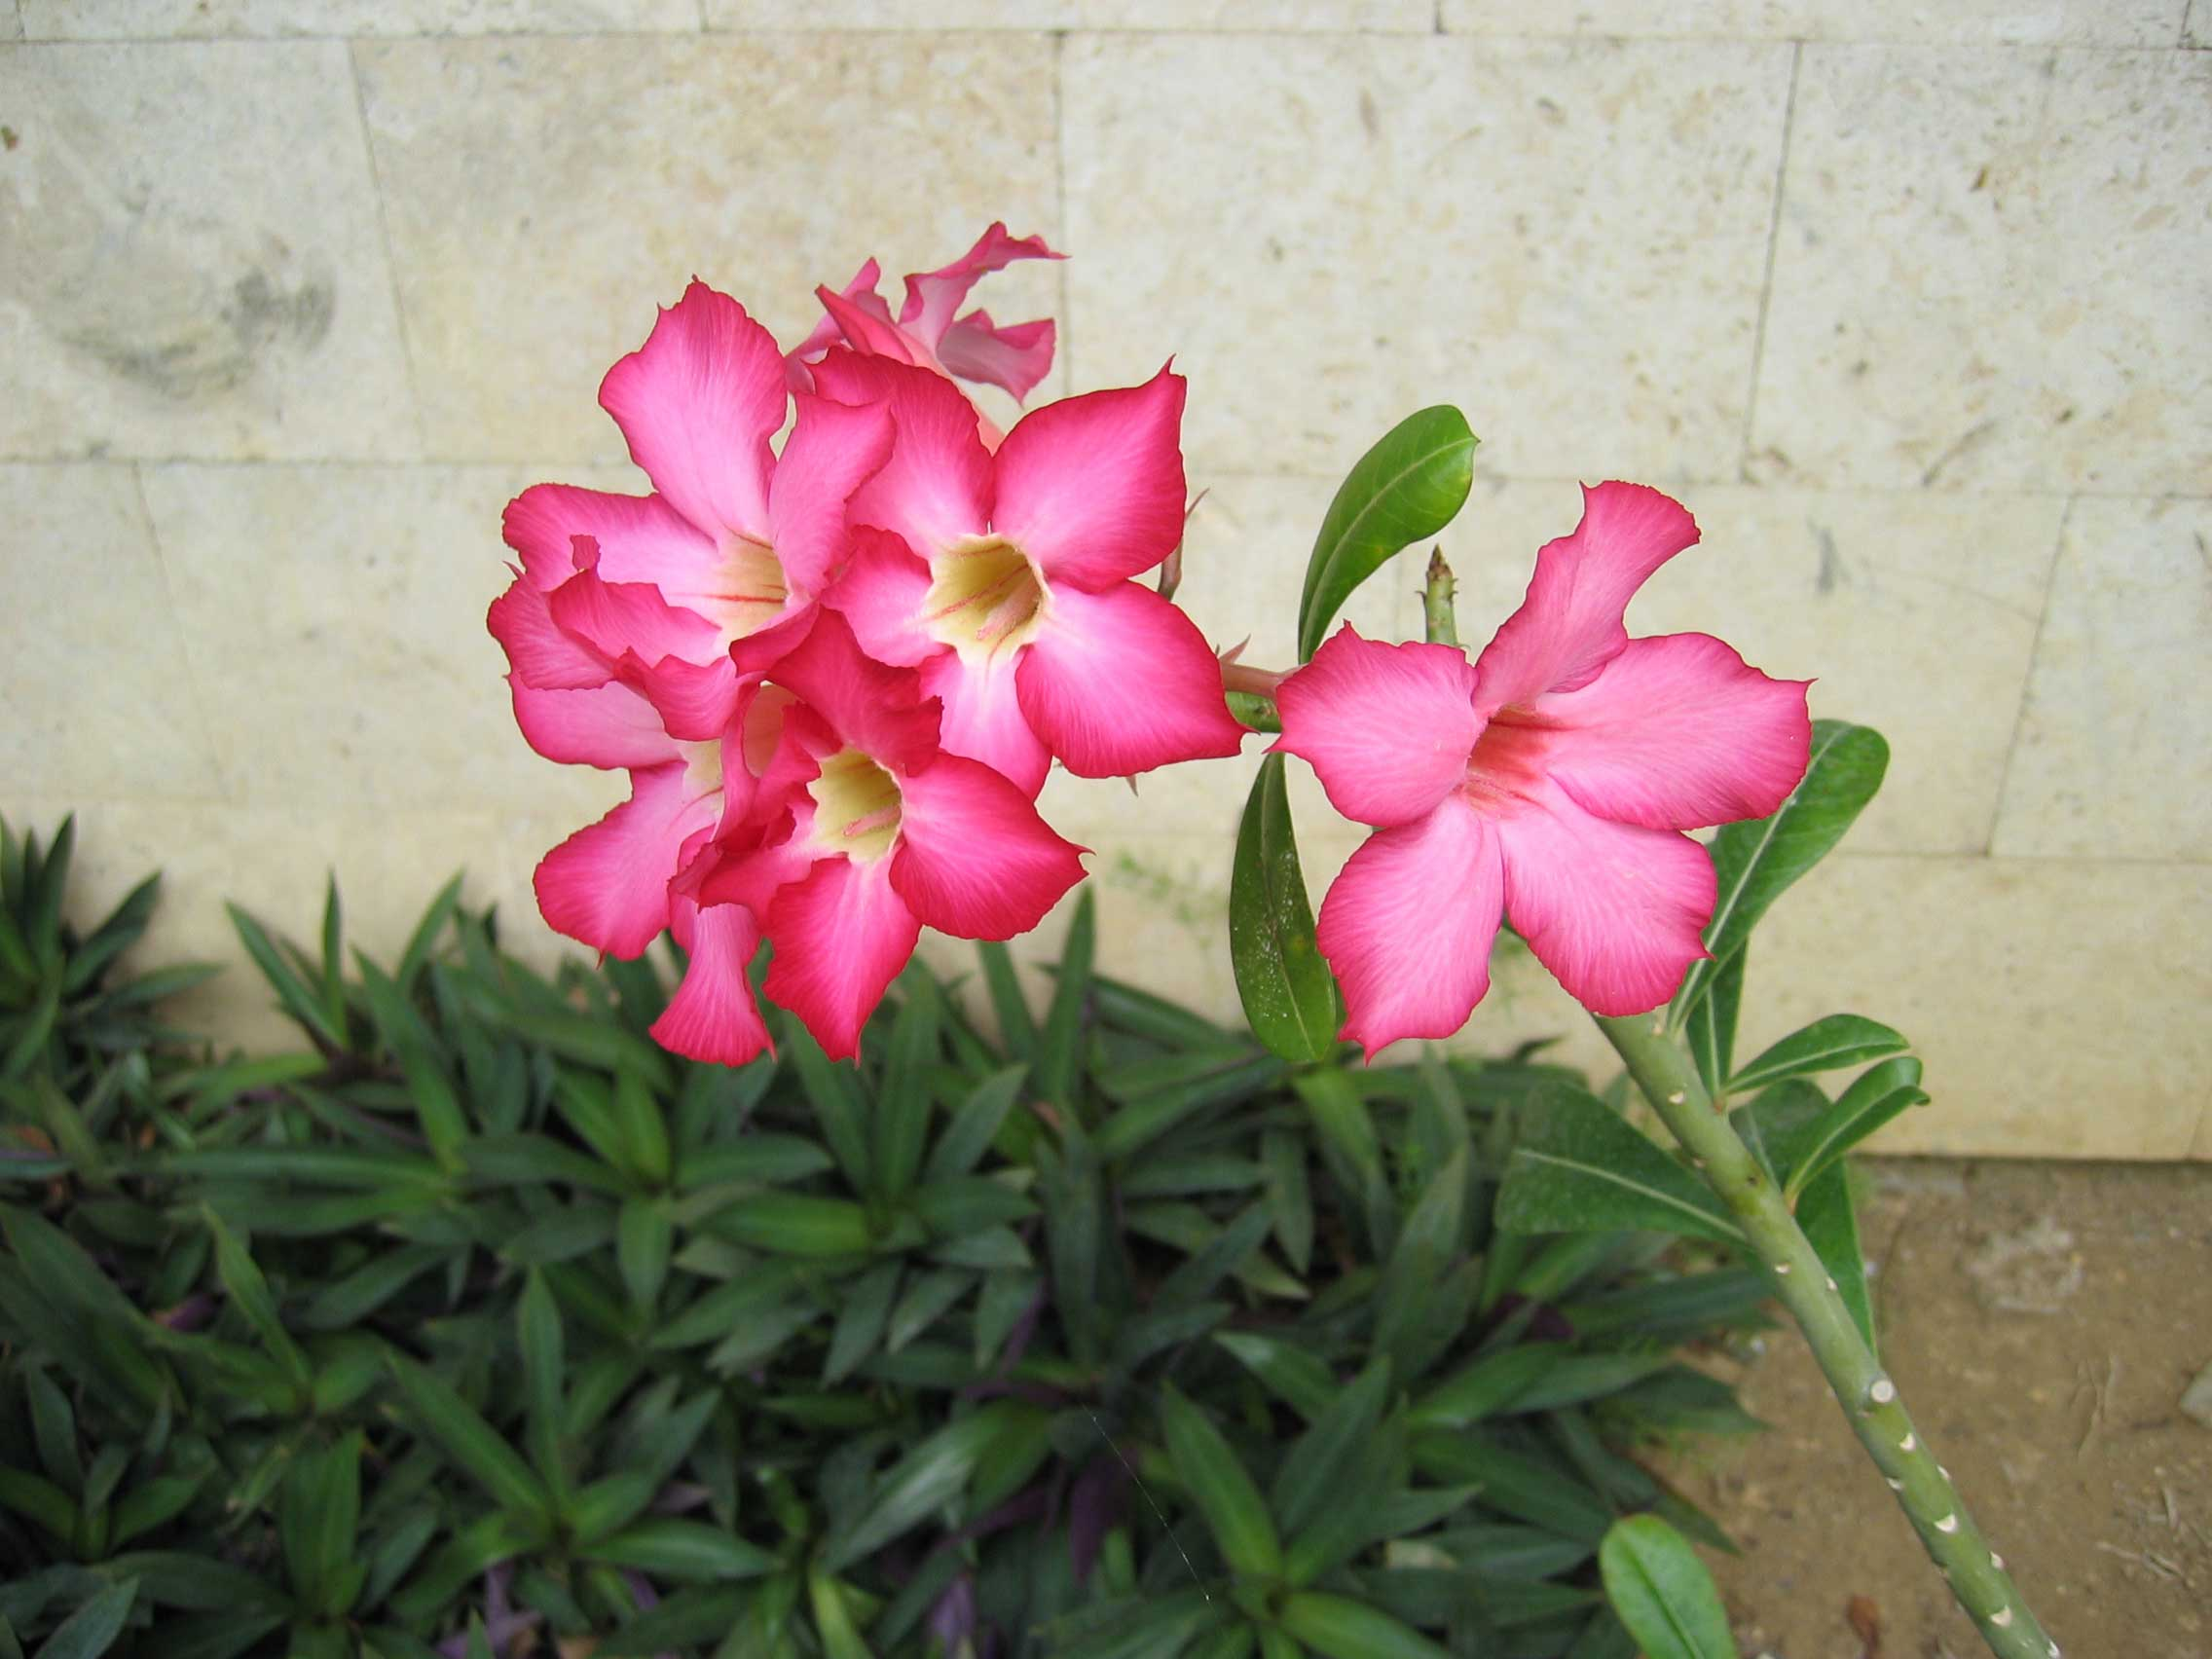 Desert Rose (Adenium obesum).  Native to Arabia.  Highly toxic sap.